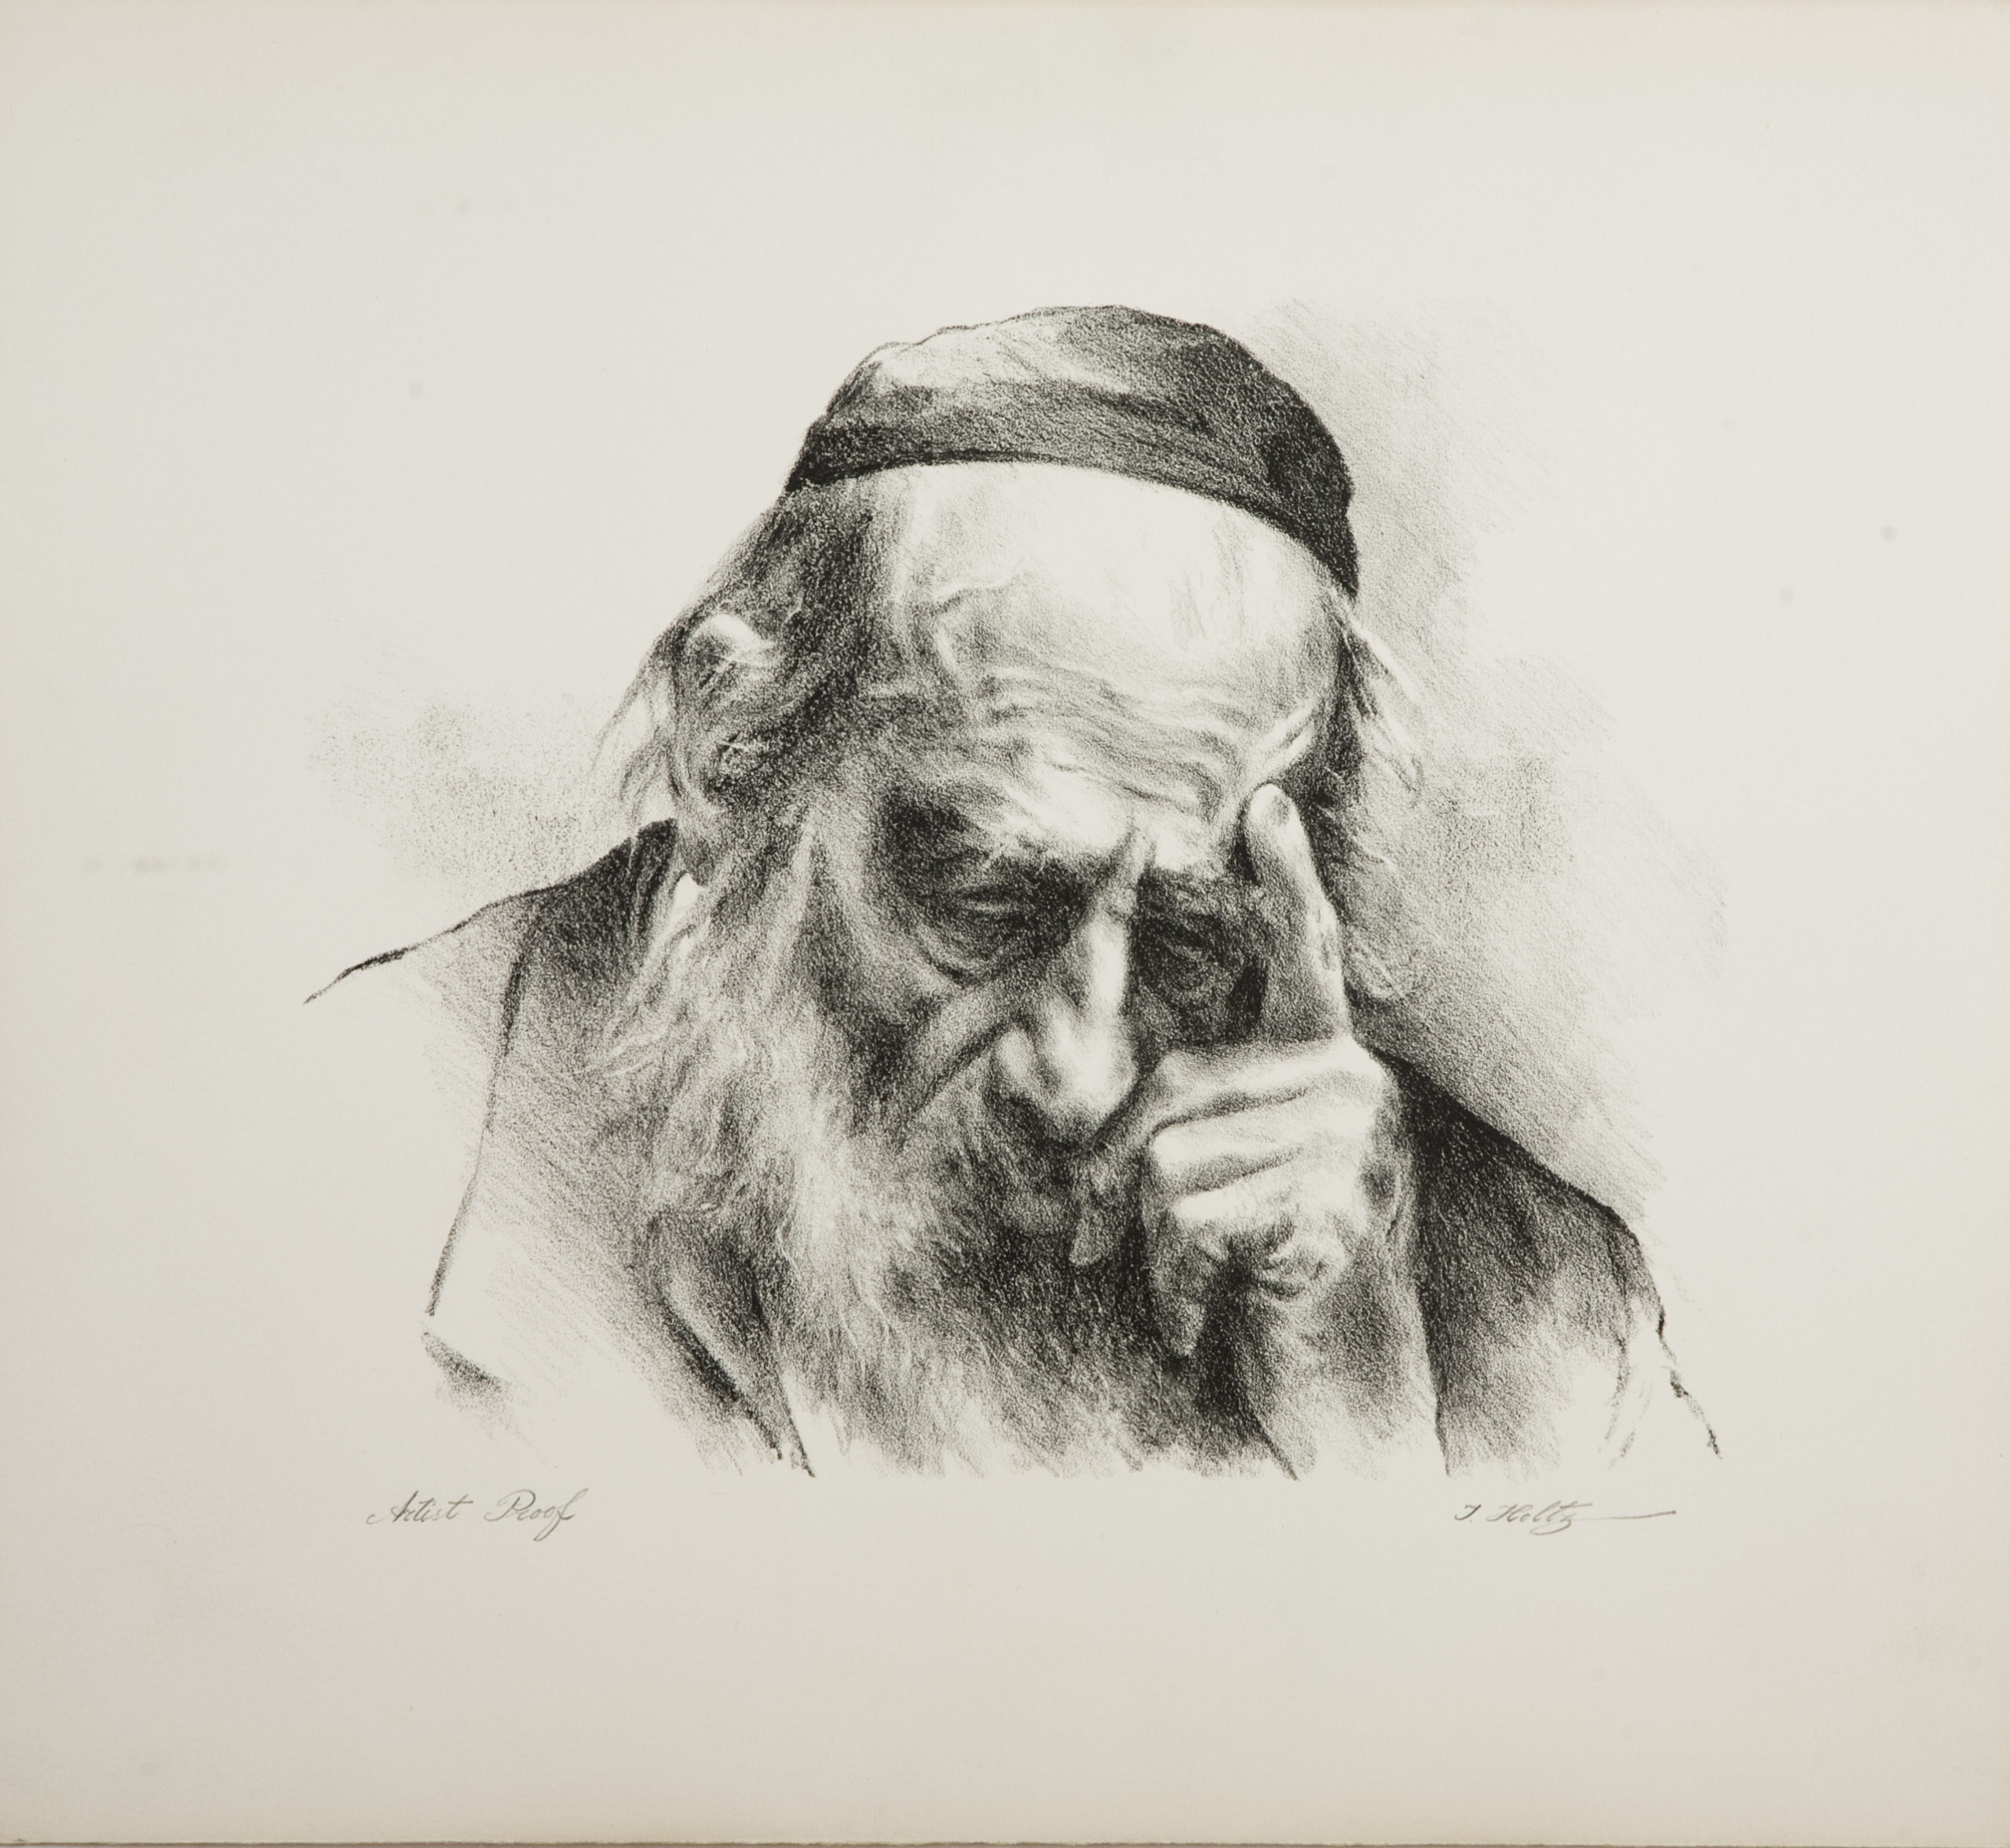 L34B Thinker Left Hand - Black and White - Lithograph - 17.25 x 15.5 - No Frame - $340